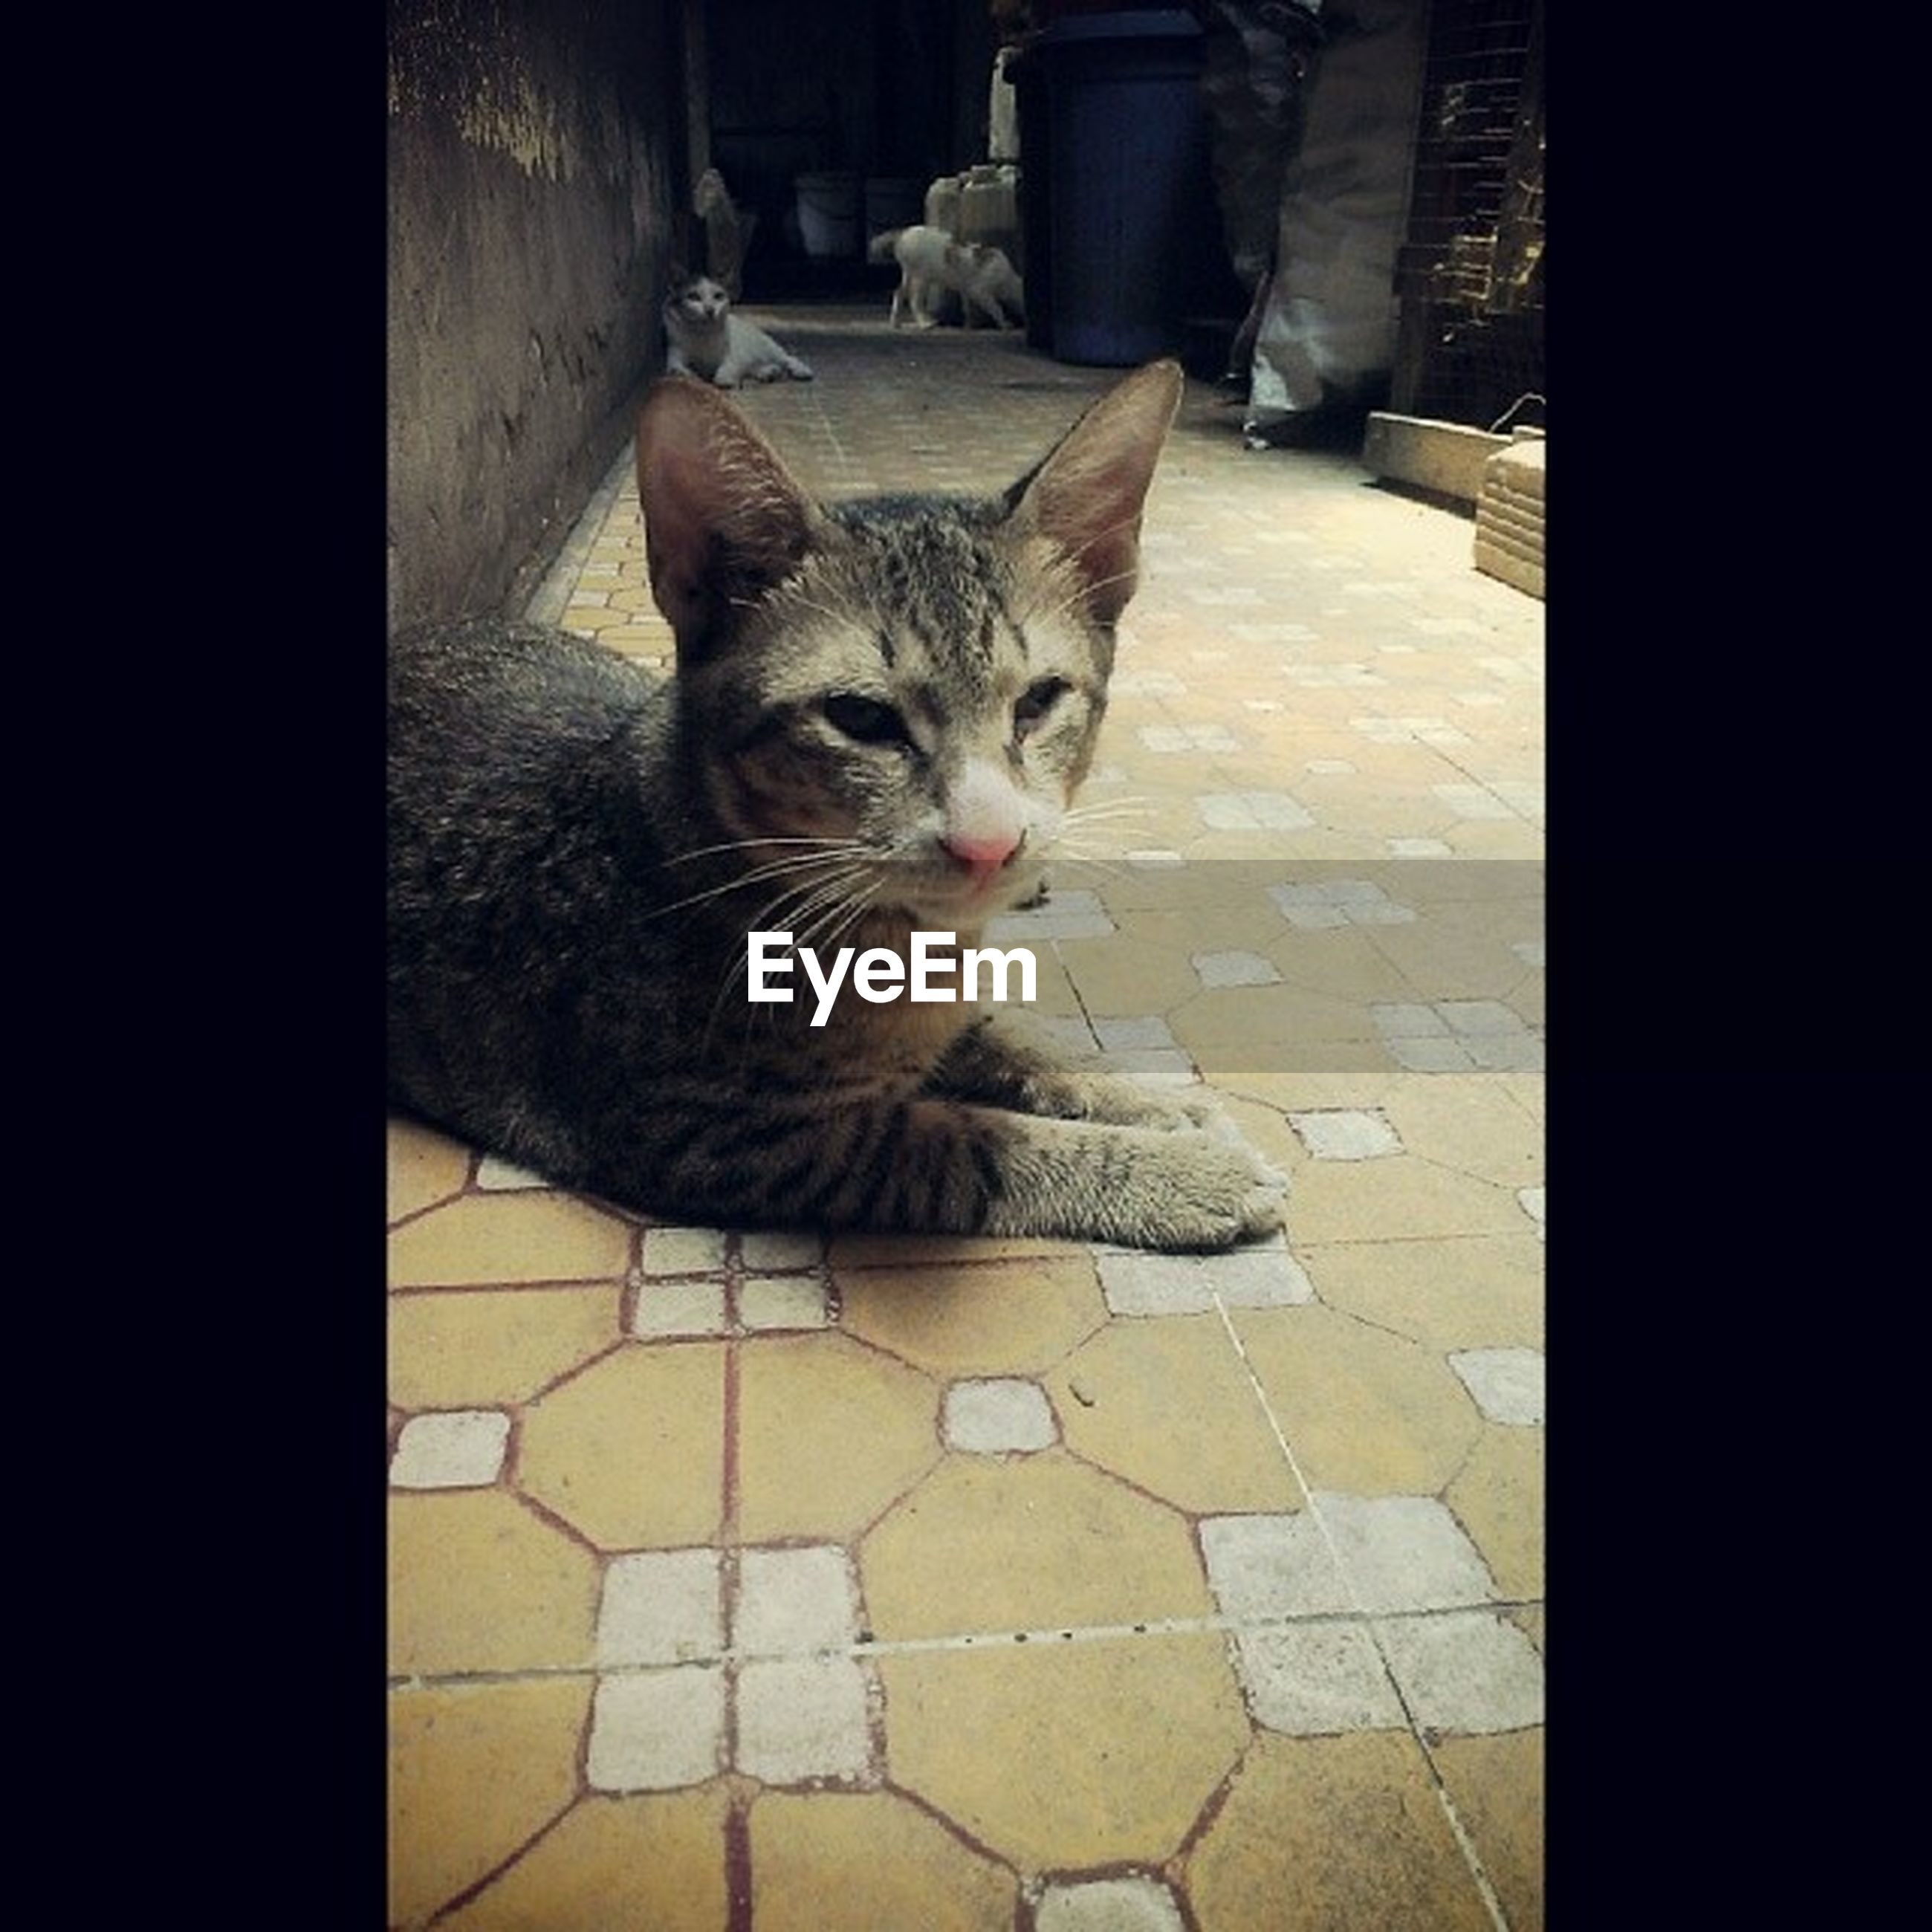 domestic cat, pets, one animal, cat, animal themes, domestic animals, feline, mammal, whisker, portrait, indoors, looking at camera, sitting, relaxation, flooring, alertness, full length, high angle view, no people, floor